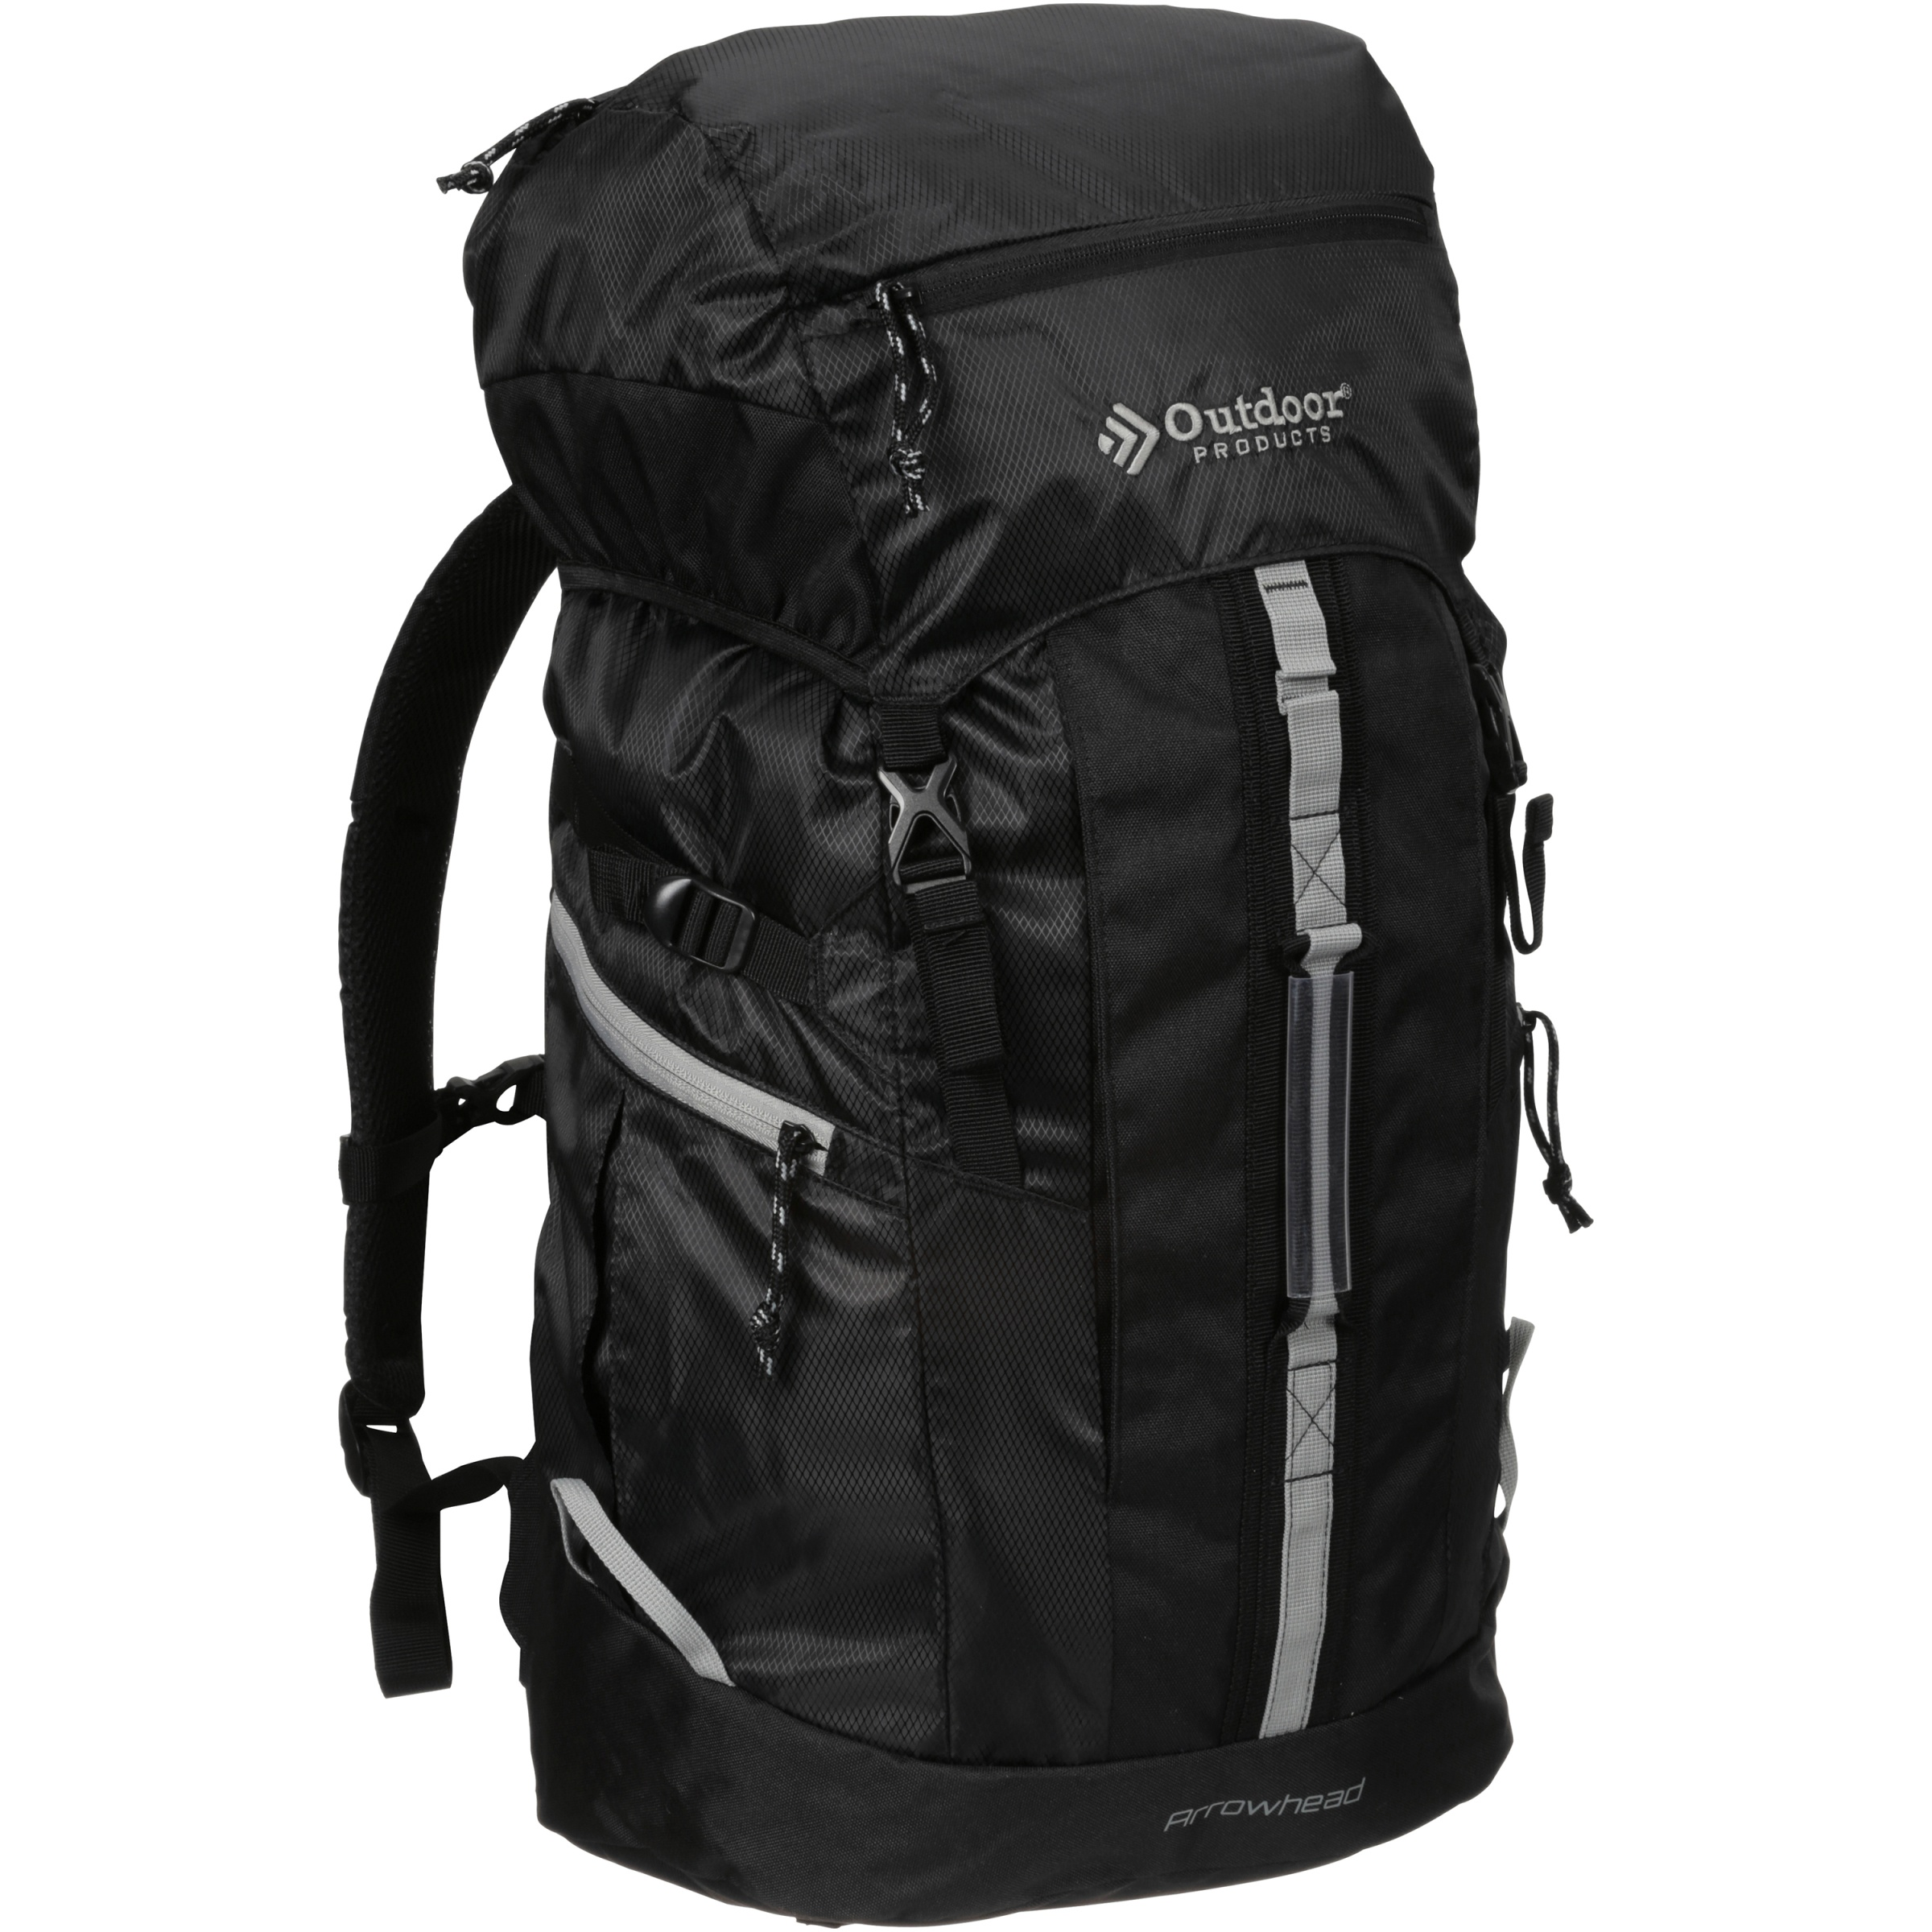 Outdoor® Products Arrowhead 8.0 Backpack, Black/Griffin